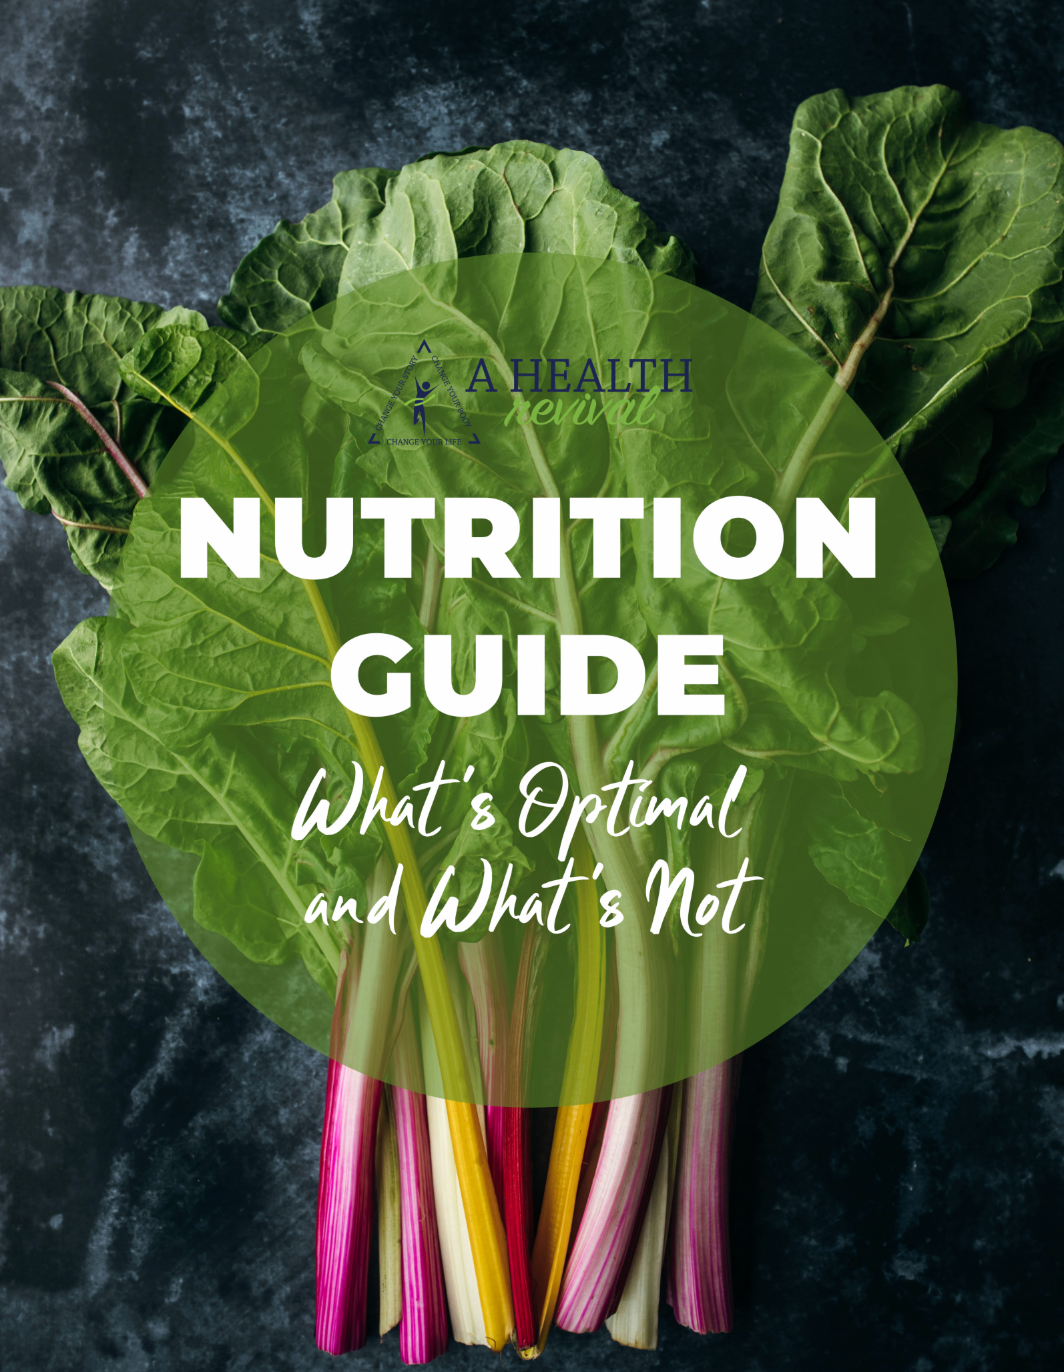 dr nancy stanley nutrition guide